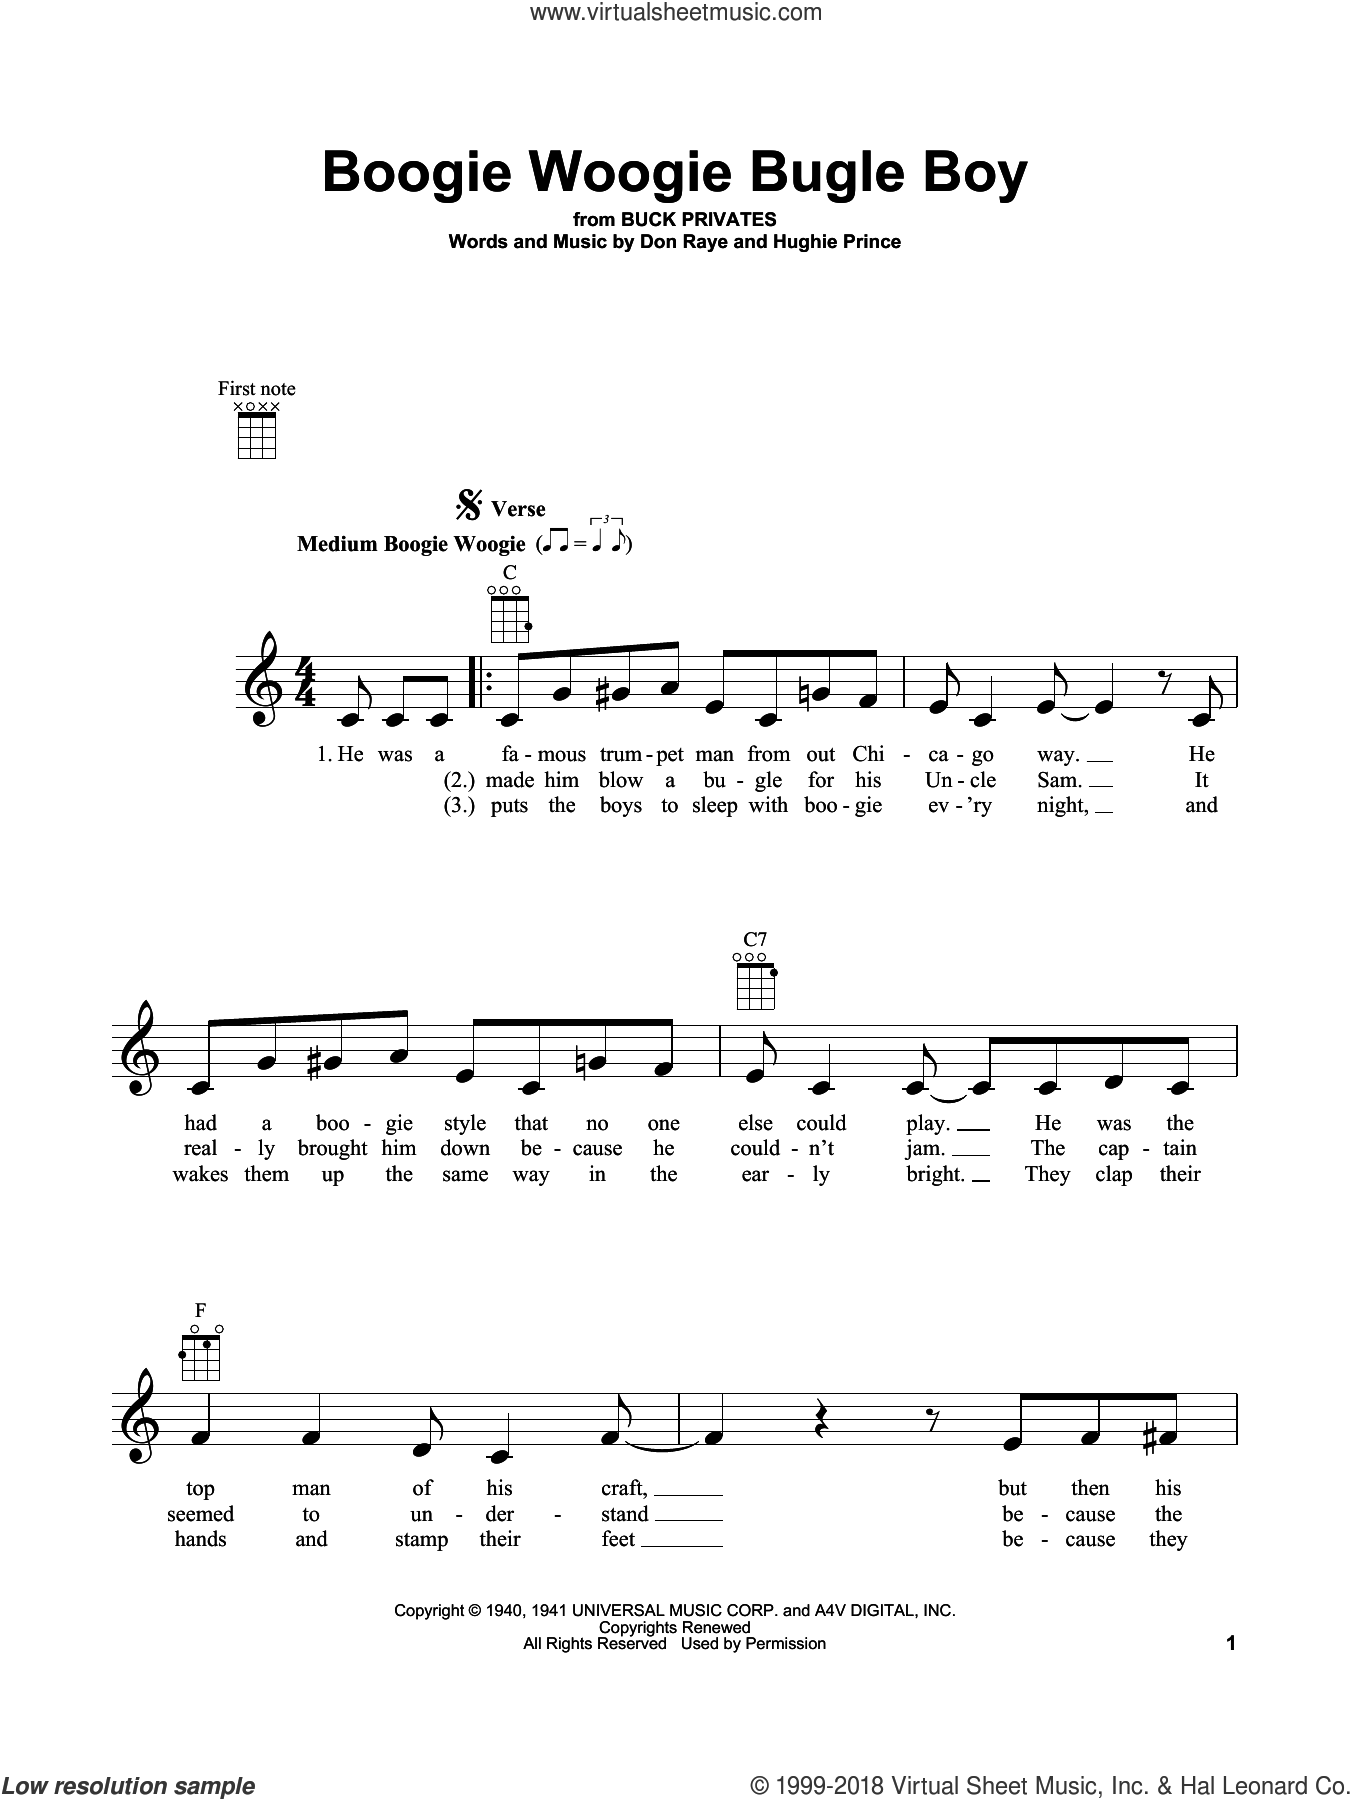 Boogie Woogie Bugle Boy sheet music for ukulele by Don Raye and Hughie Prince, intermediate skill level